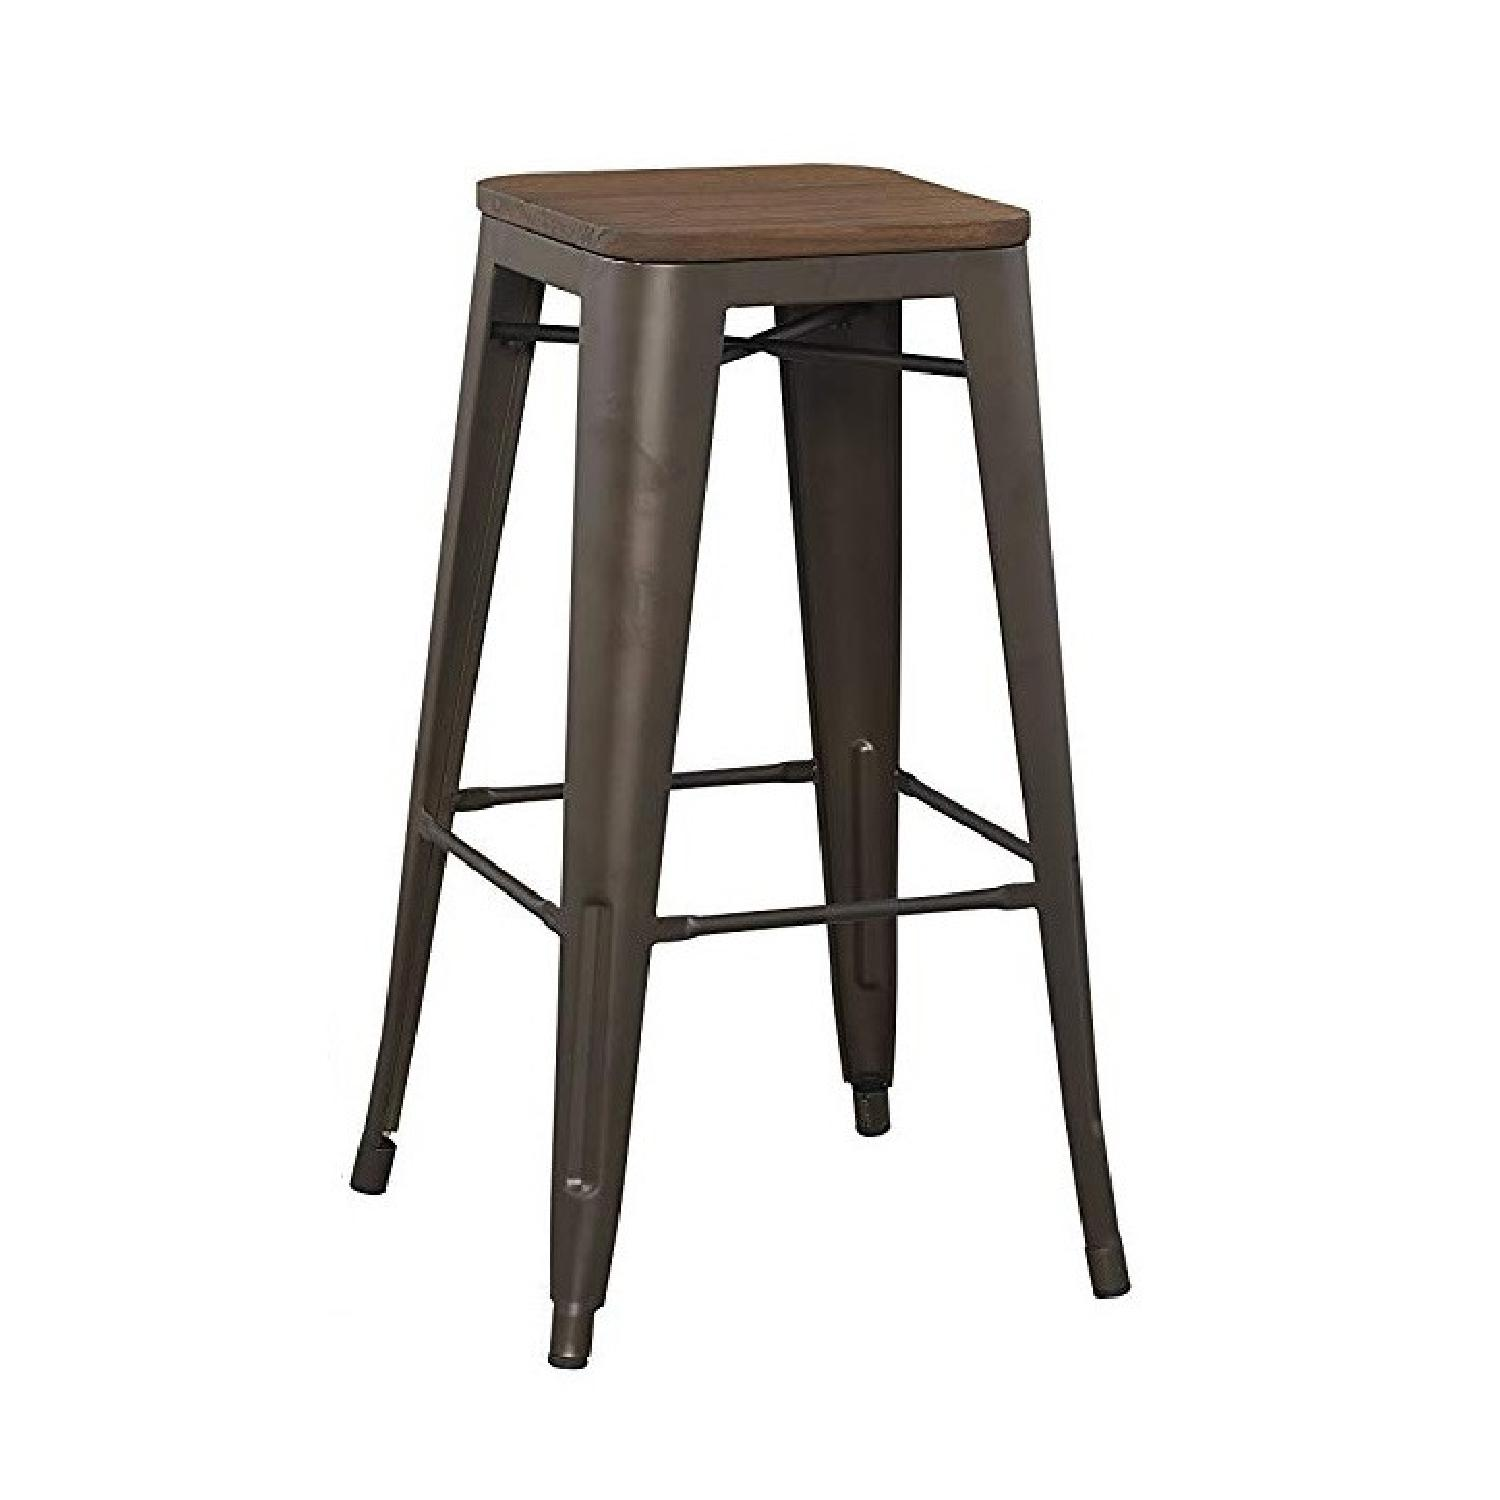 BTExpert Industrial Rustic Metal Stools w/ Wood Top - image-0